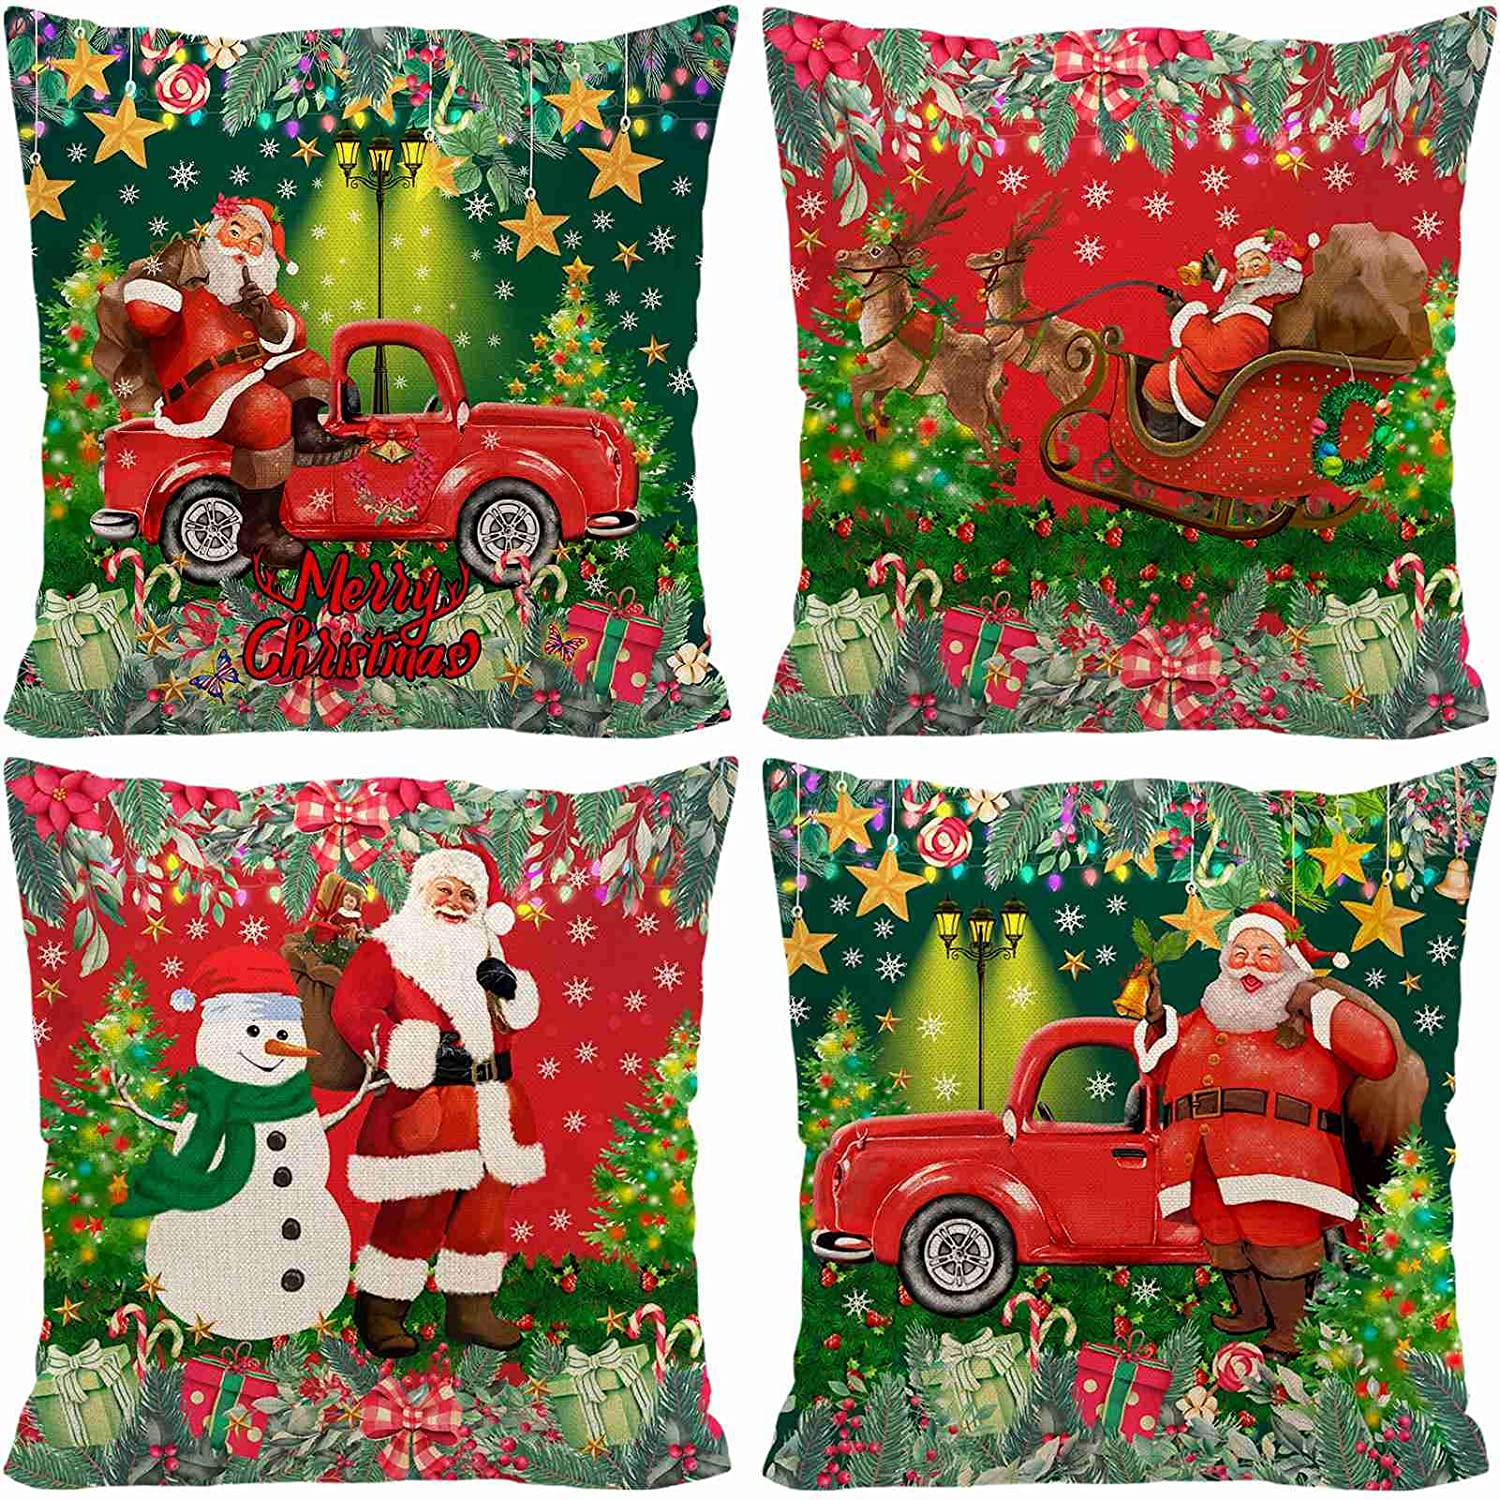 """AOKDEER Christmas Pillow Covers, Red Truck Santa Claus Couch Throw Covers 18""""x18"""", Merry Christmas Snowman Xmas Tree Winter Cotton Linen Pillow Cases Home Decorative for Sofa, Bed Car (Red Green)"""